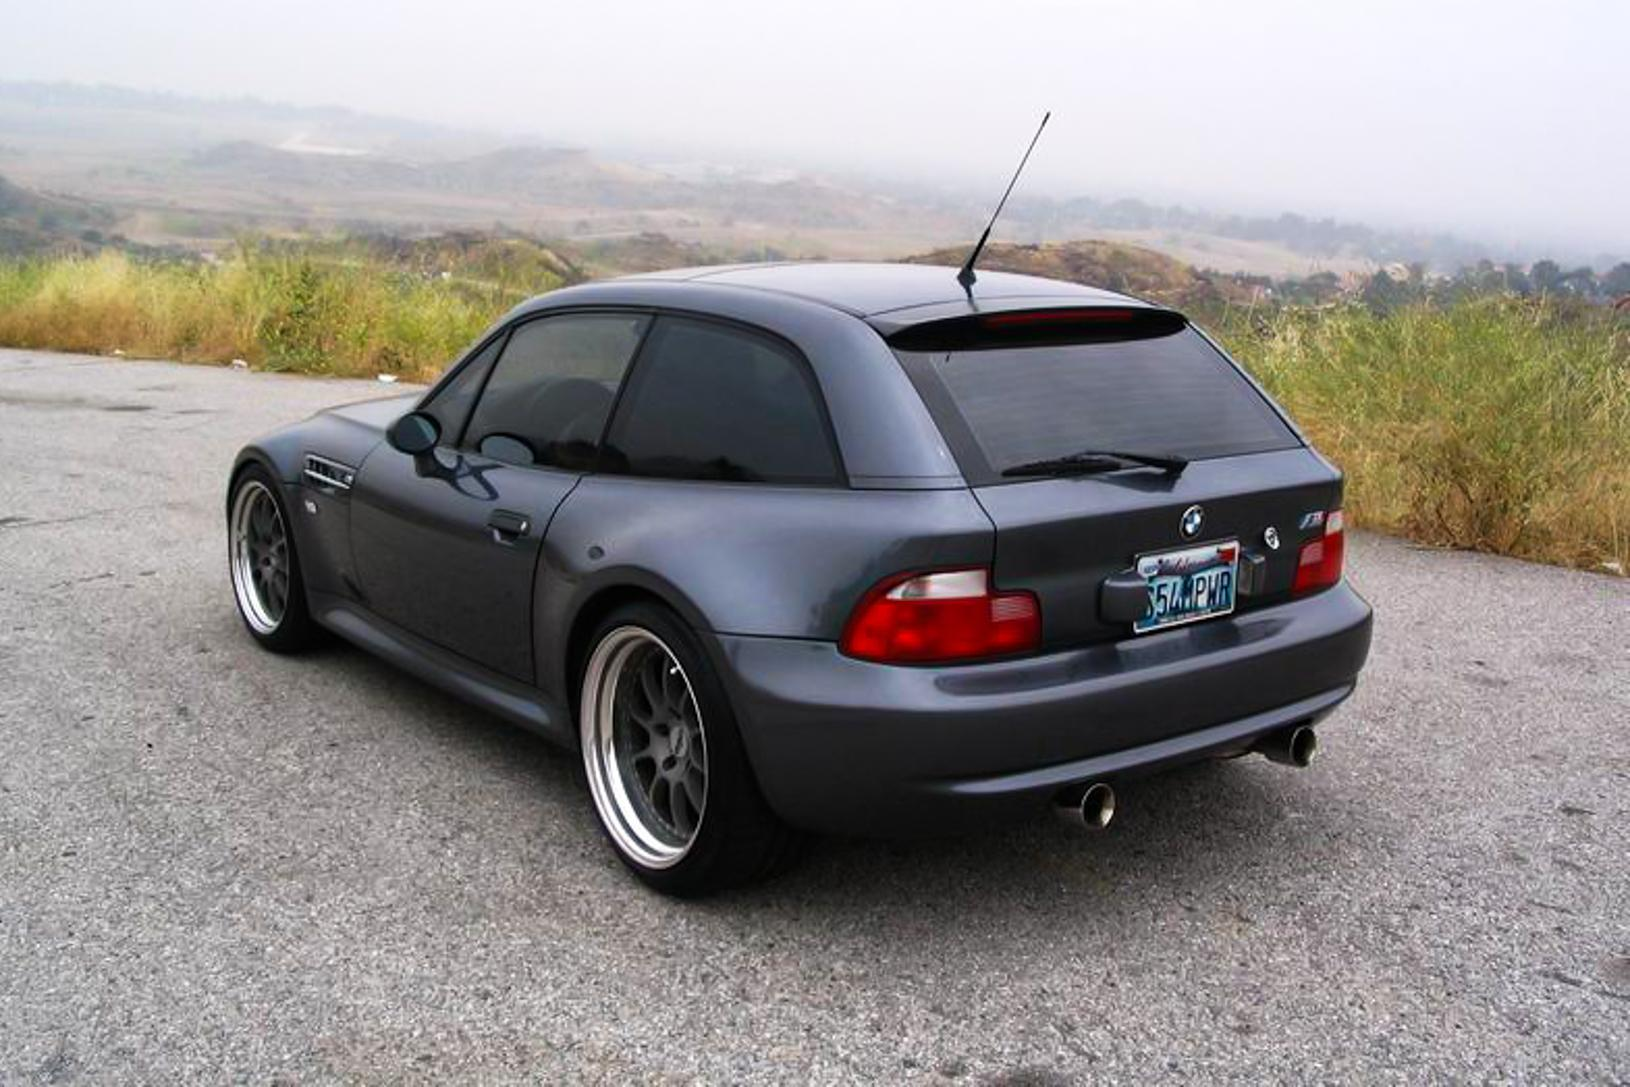 2001 BMW M-Coupe 'Supercharged'